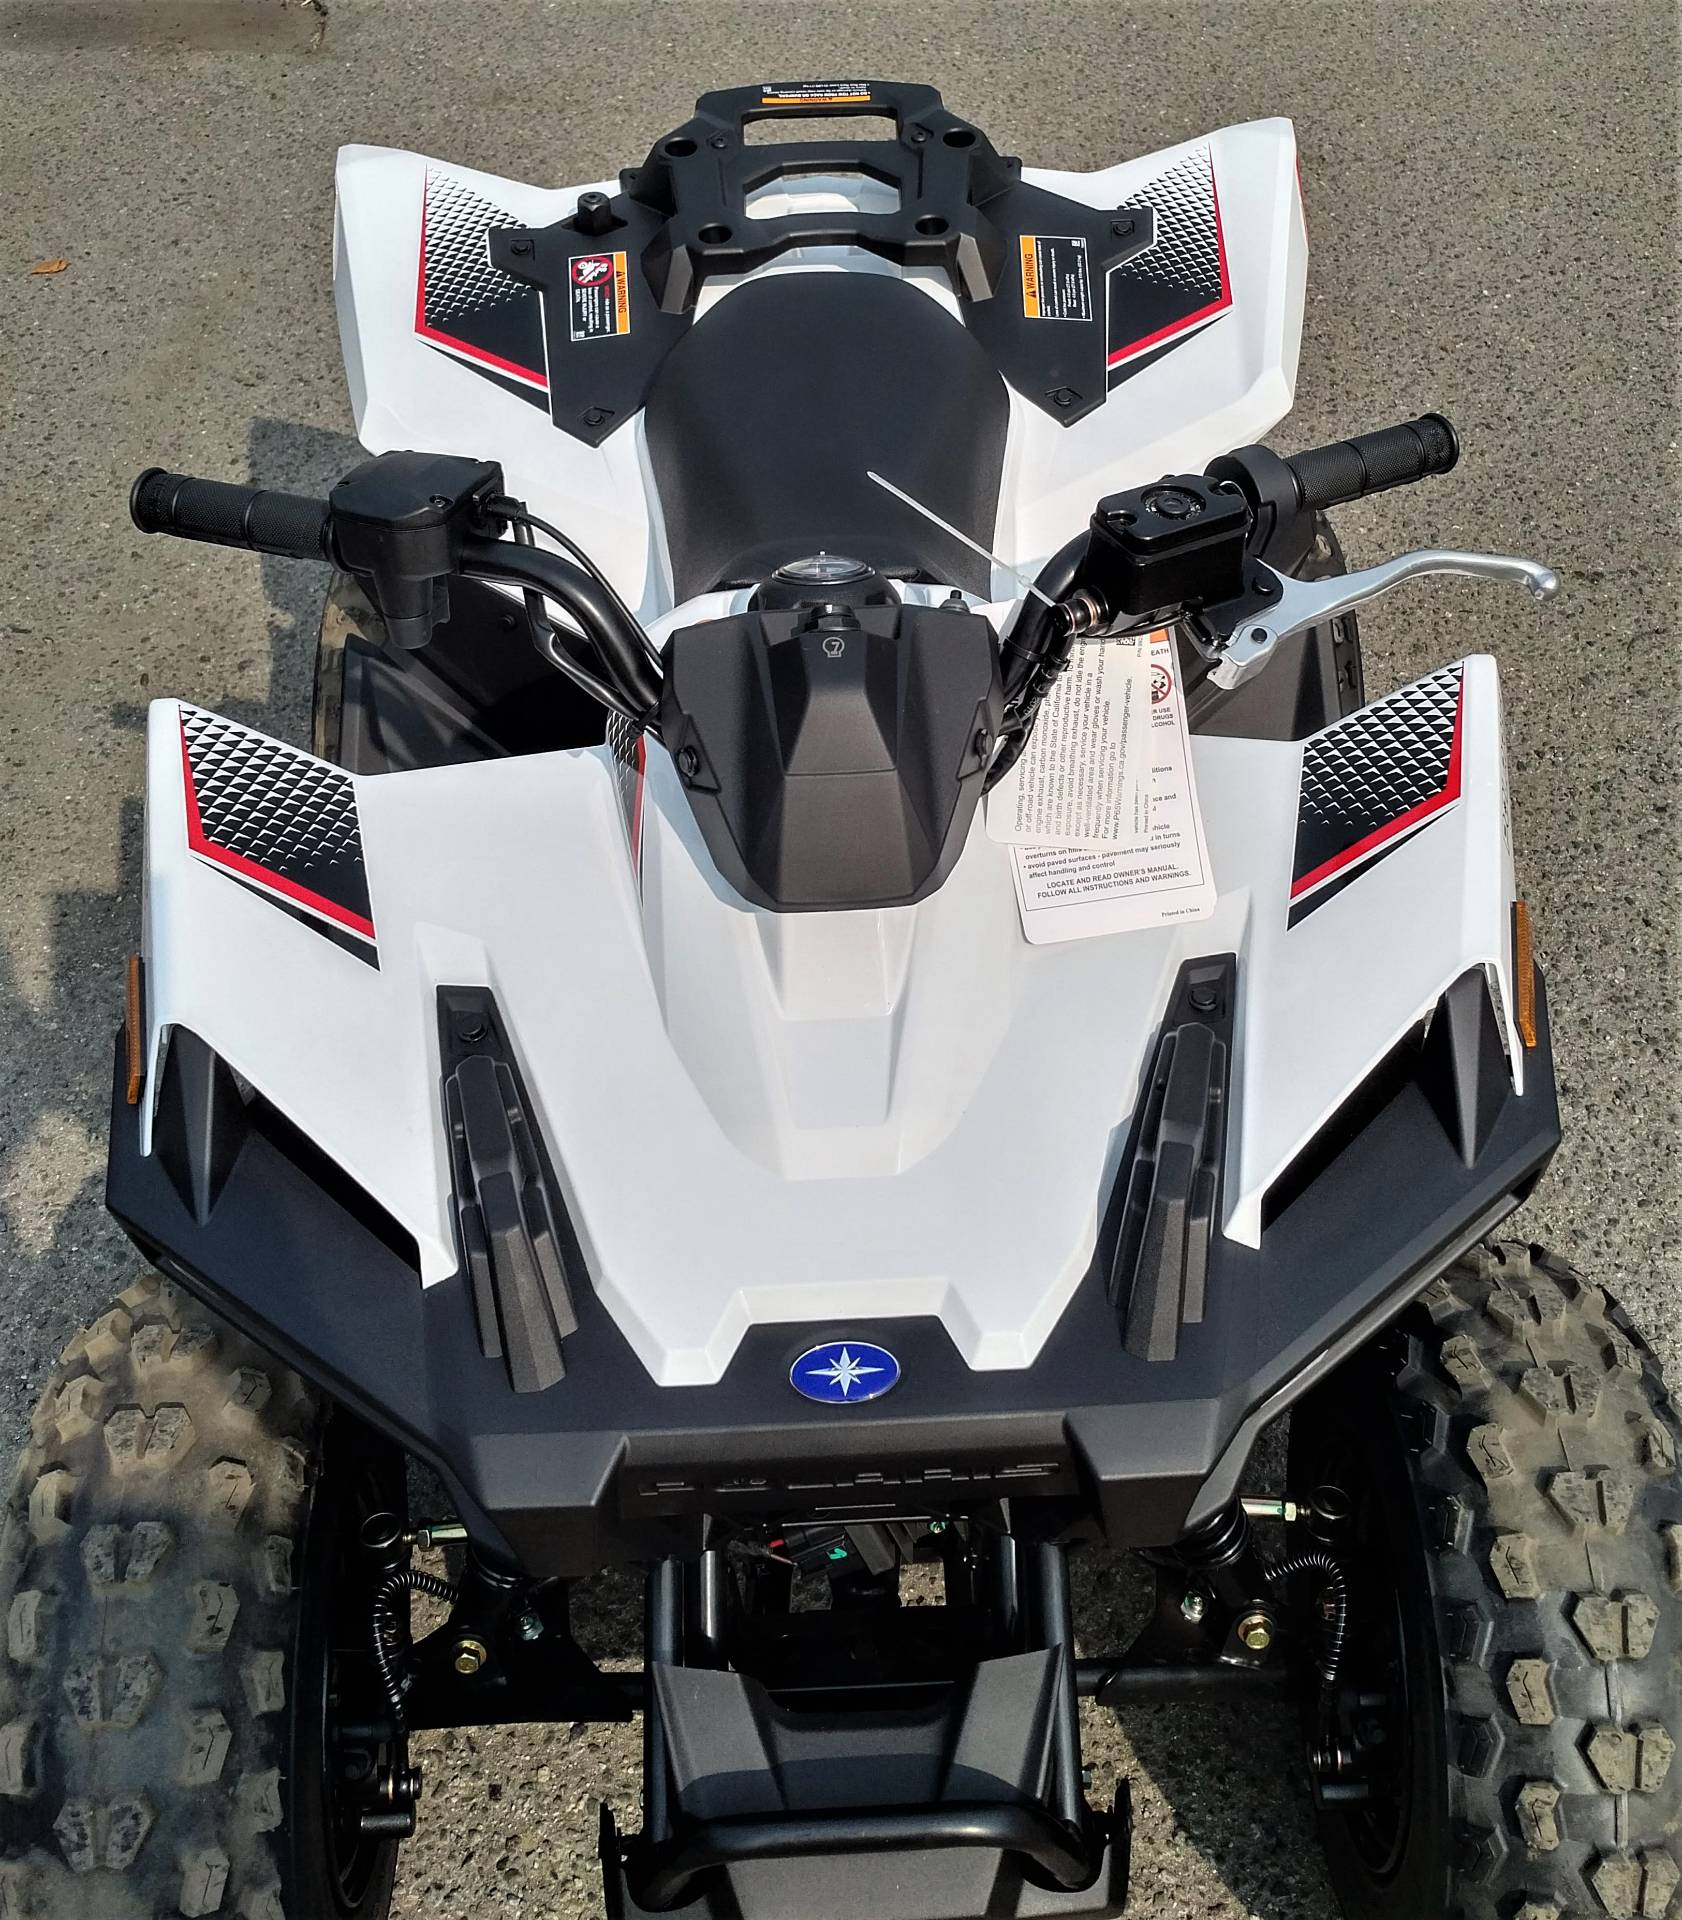 2021 Polaris Outlaw 70 EFI in Salinas, California - Photo 5